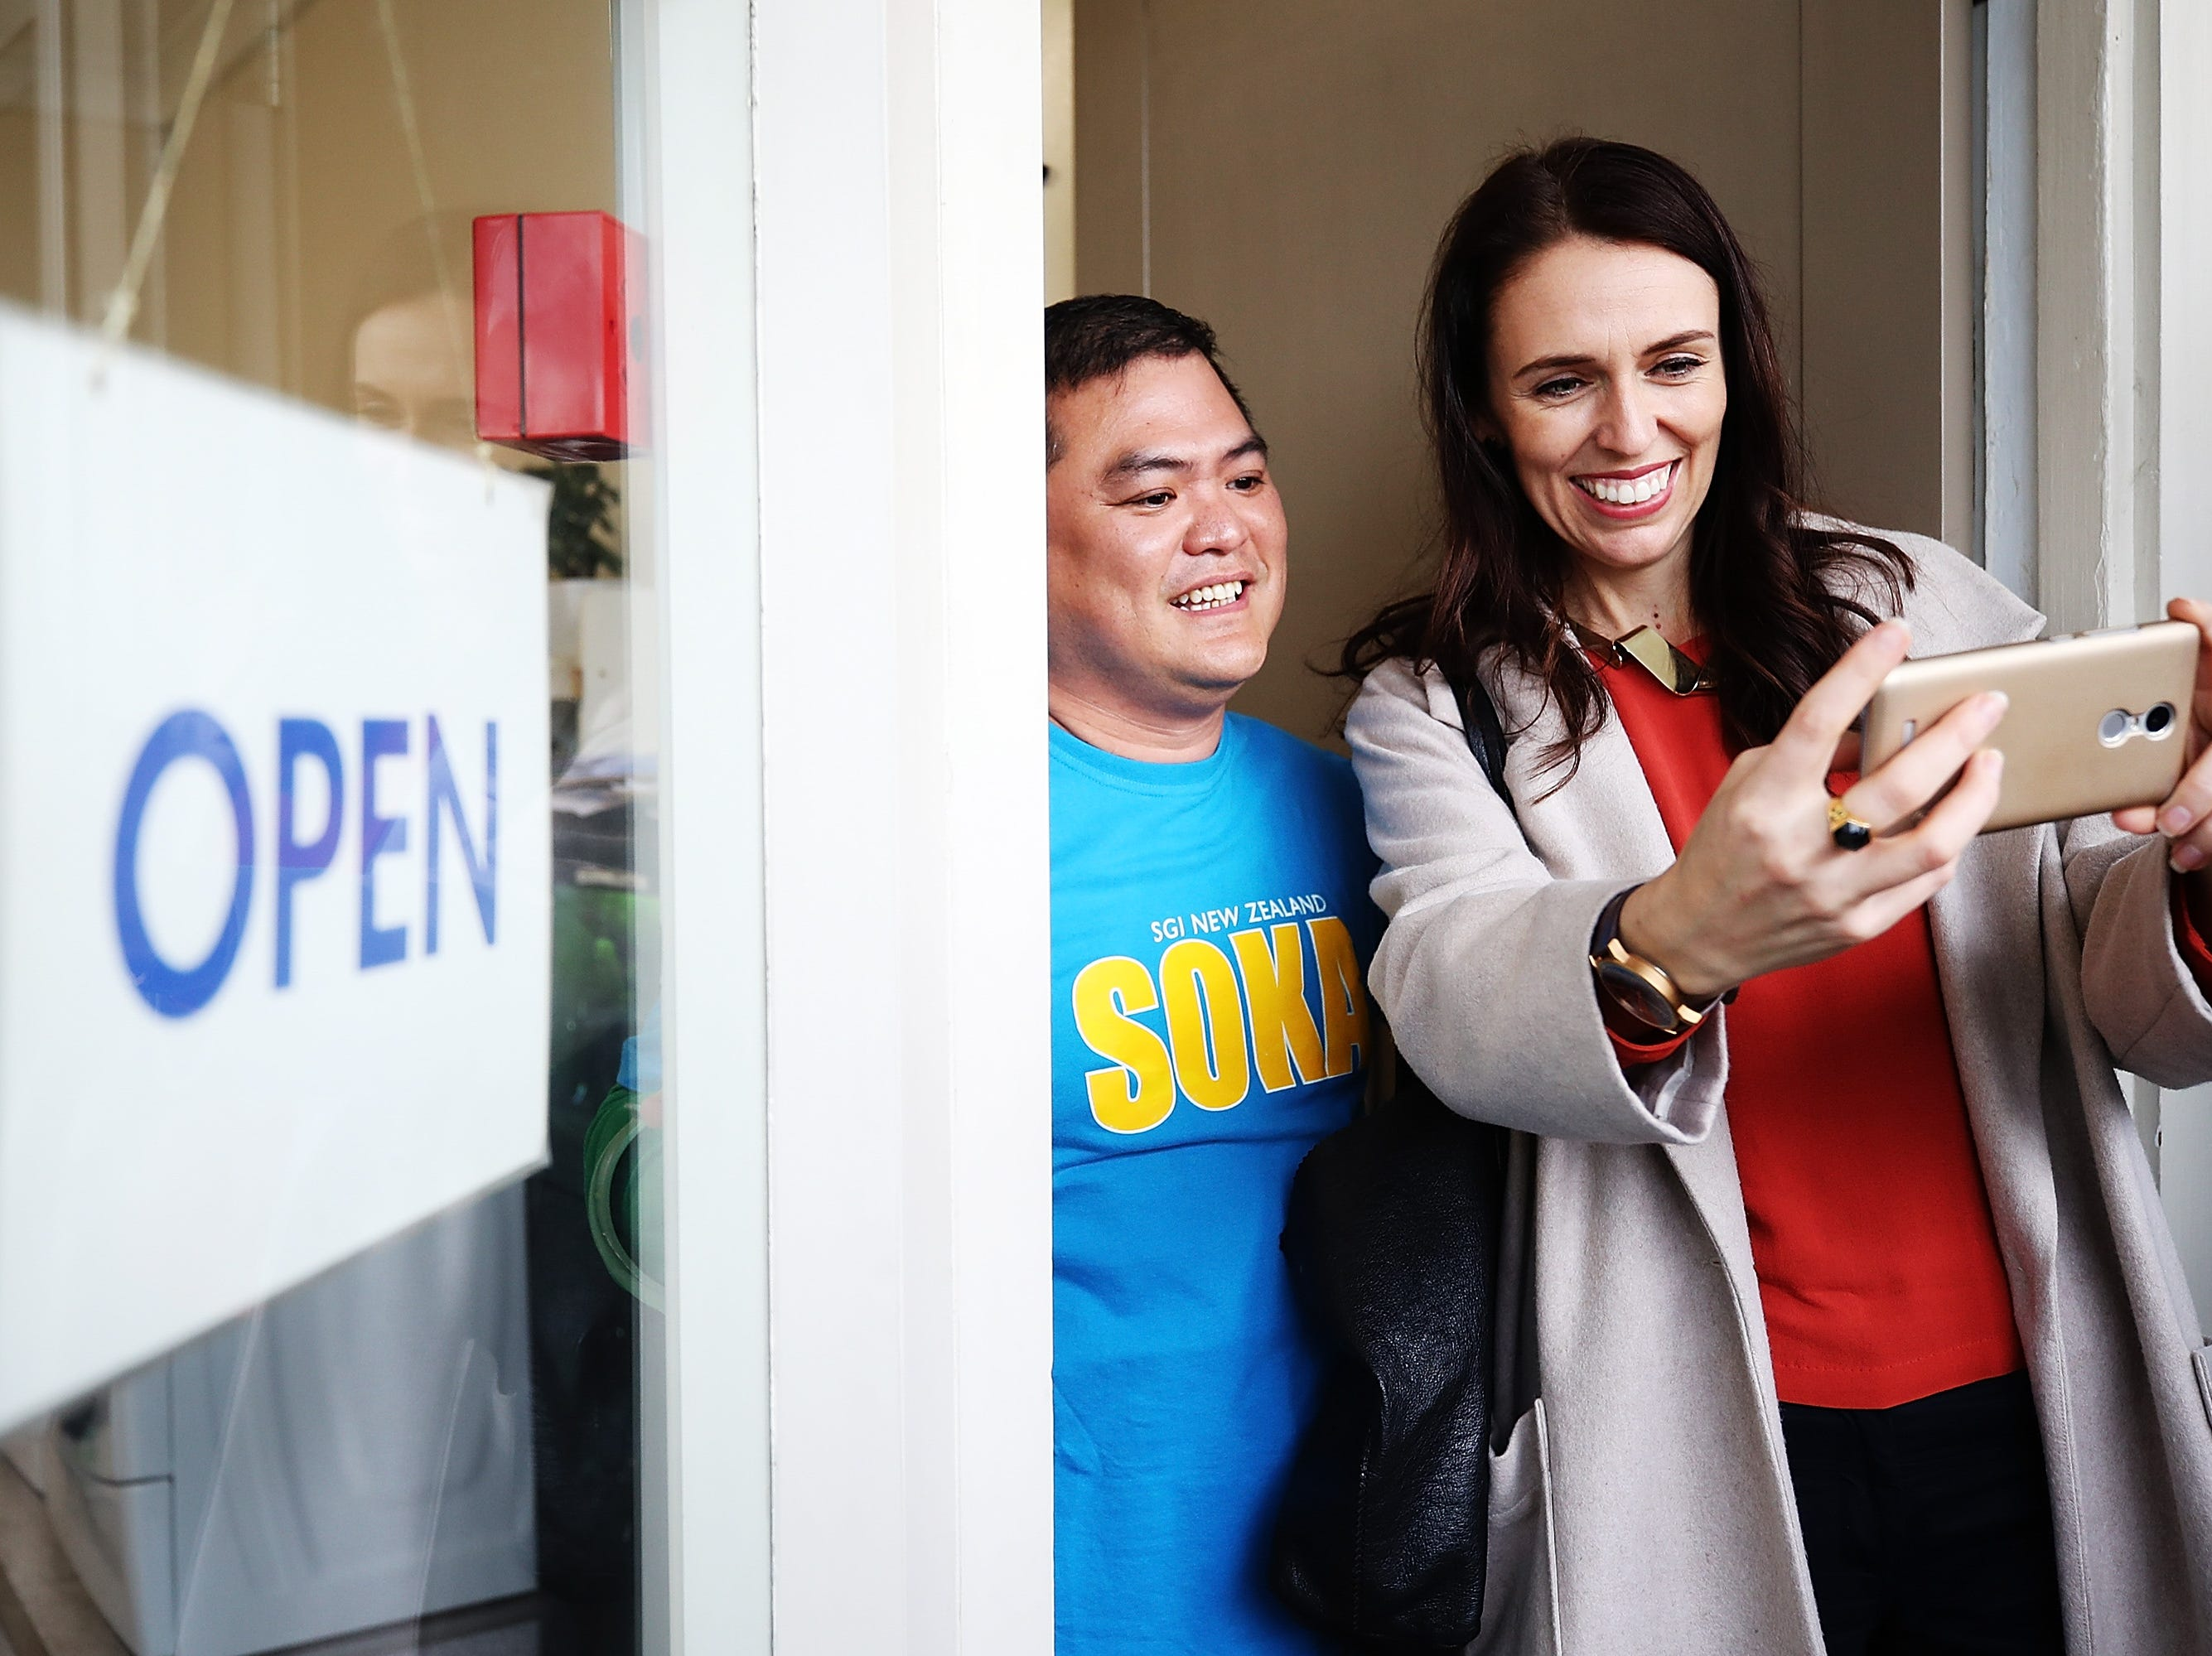 New Zealand Prime Minister Jacinda Ardern poses for photos at the Sandringham street festival on Oct. 28, 2017 in Auckland, New Zealand. Jacinda Ardern was sworn in as New Zealand's 20th Prime Minister on Thursday and is the country's youngest leader in more than 150 years.